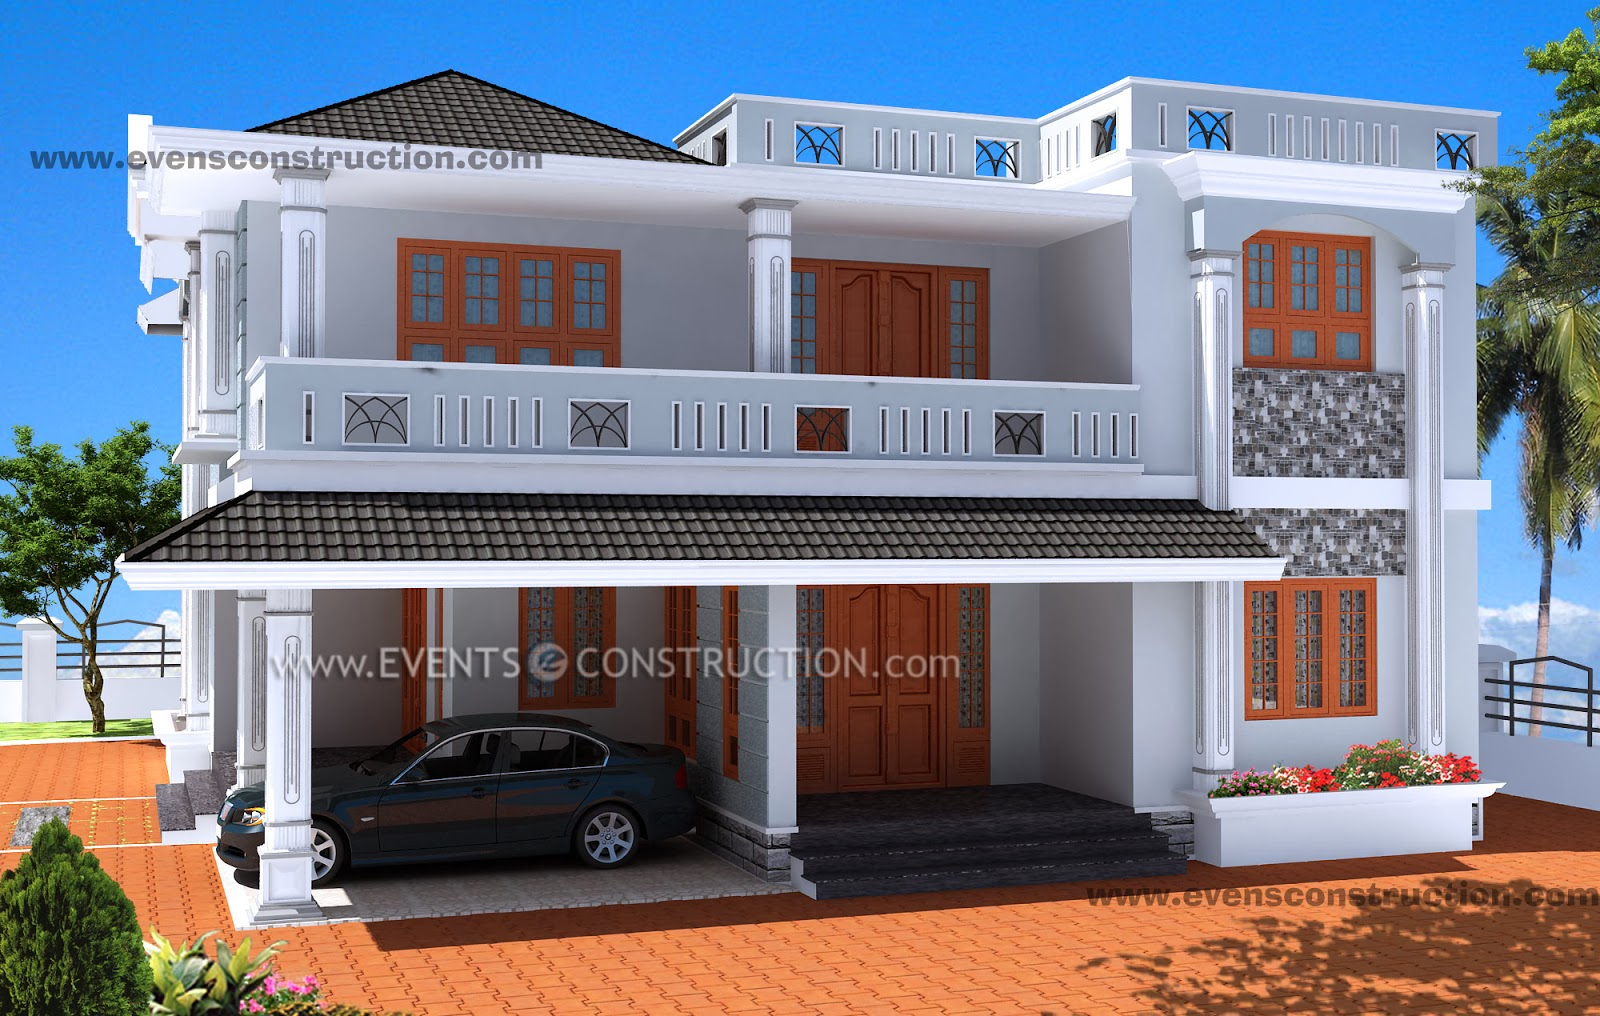 evens construction pvt ltd: 3d kerala house designs november 2013